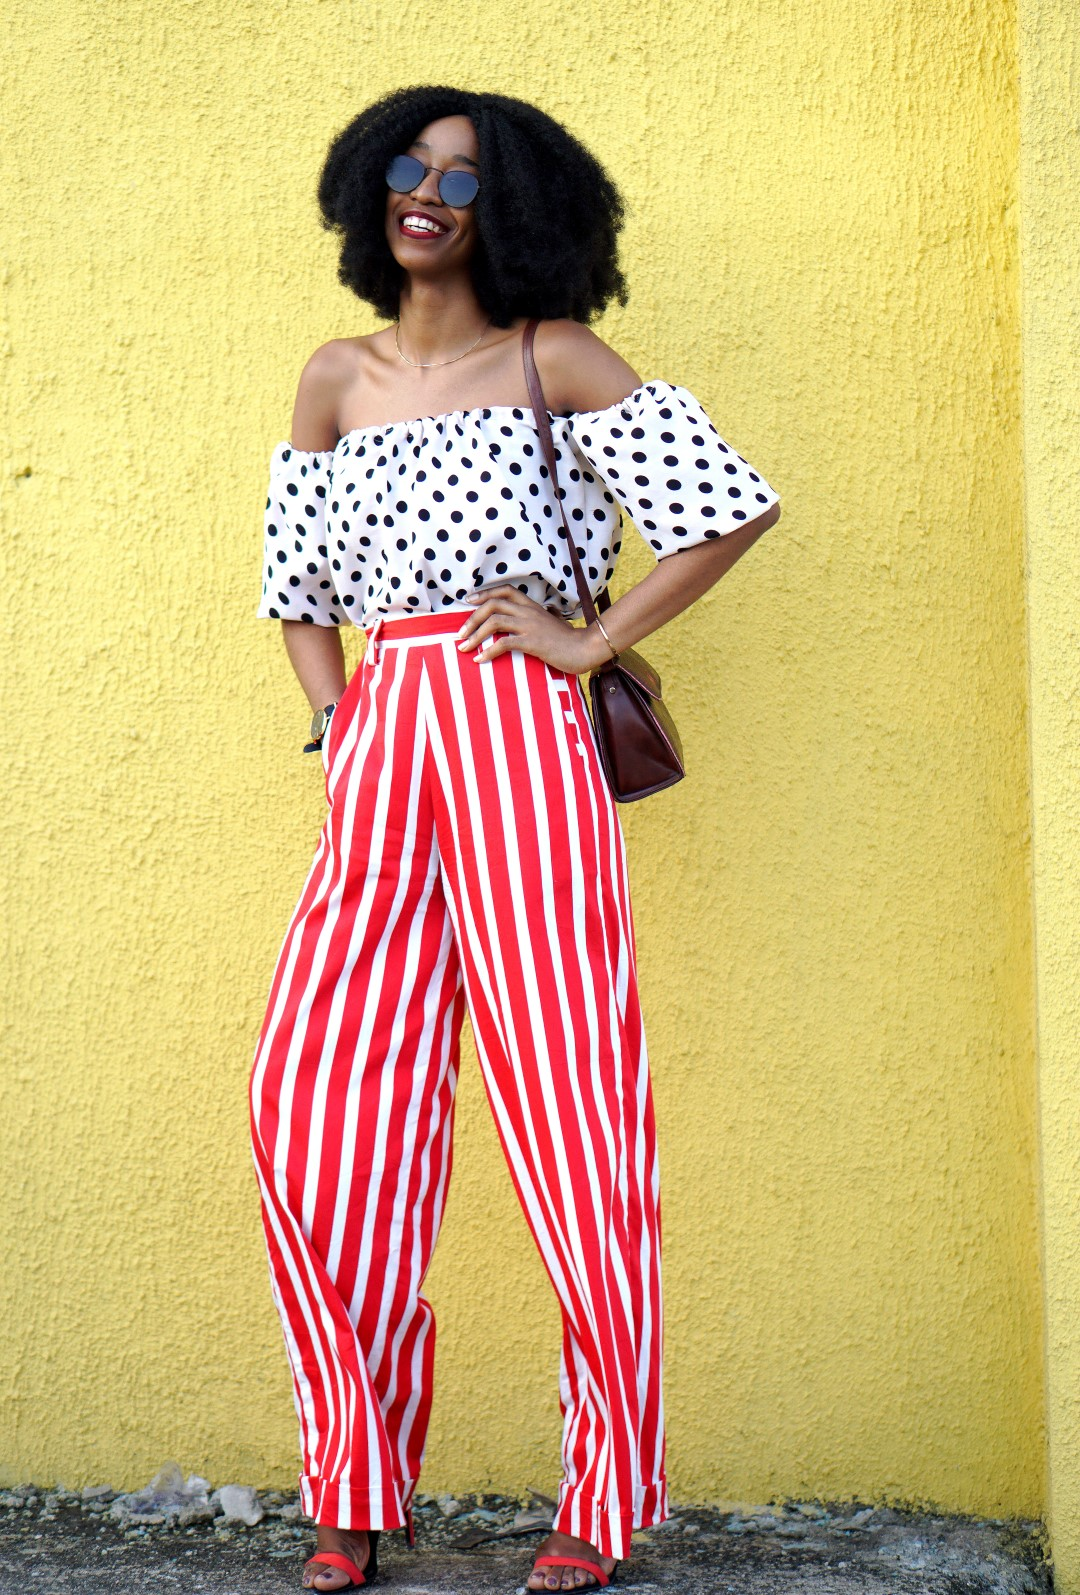 Mixed prints fashion trend : Nigerian fashion blogger Cassie Daves In a polka dot off shoulder top and striped pants and sunglasses